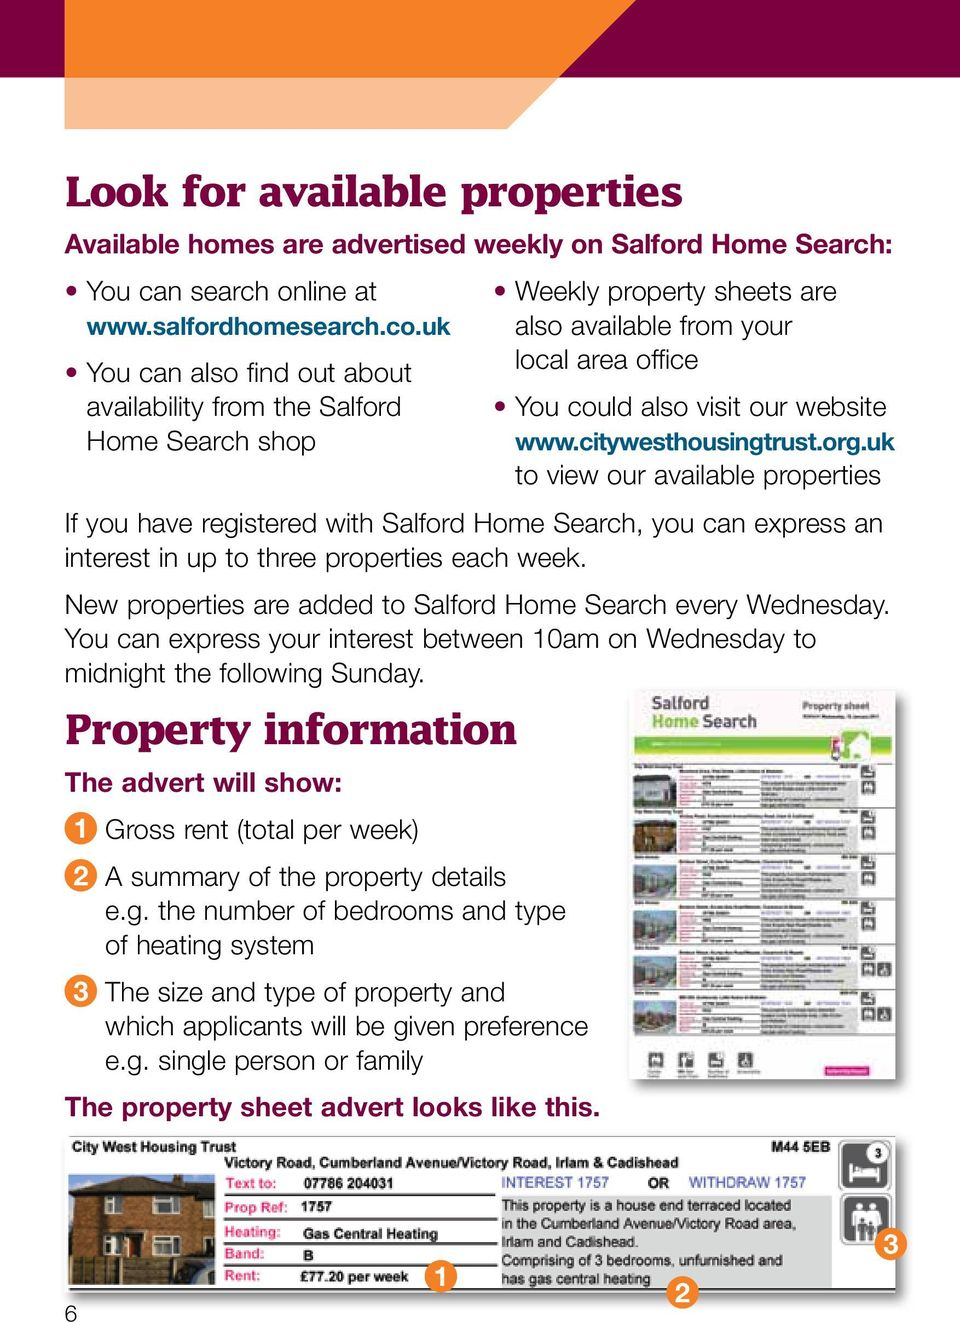 New properties are added to Salford Home Search every Wednesday. You can express your interest between 10am on Wednesday to midnight the following Sunday.